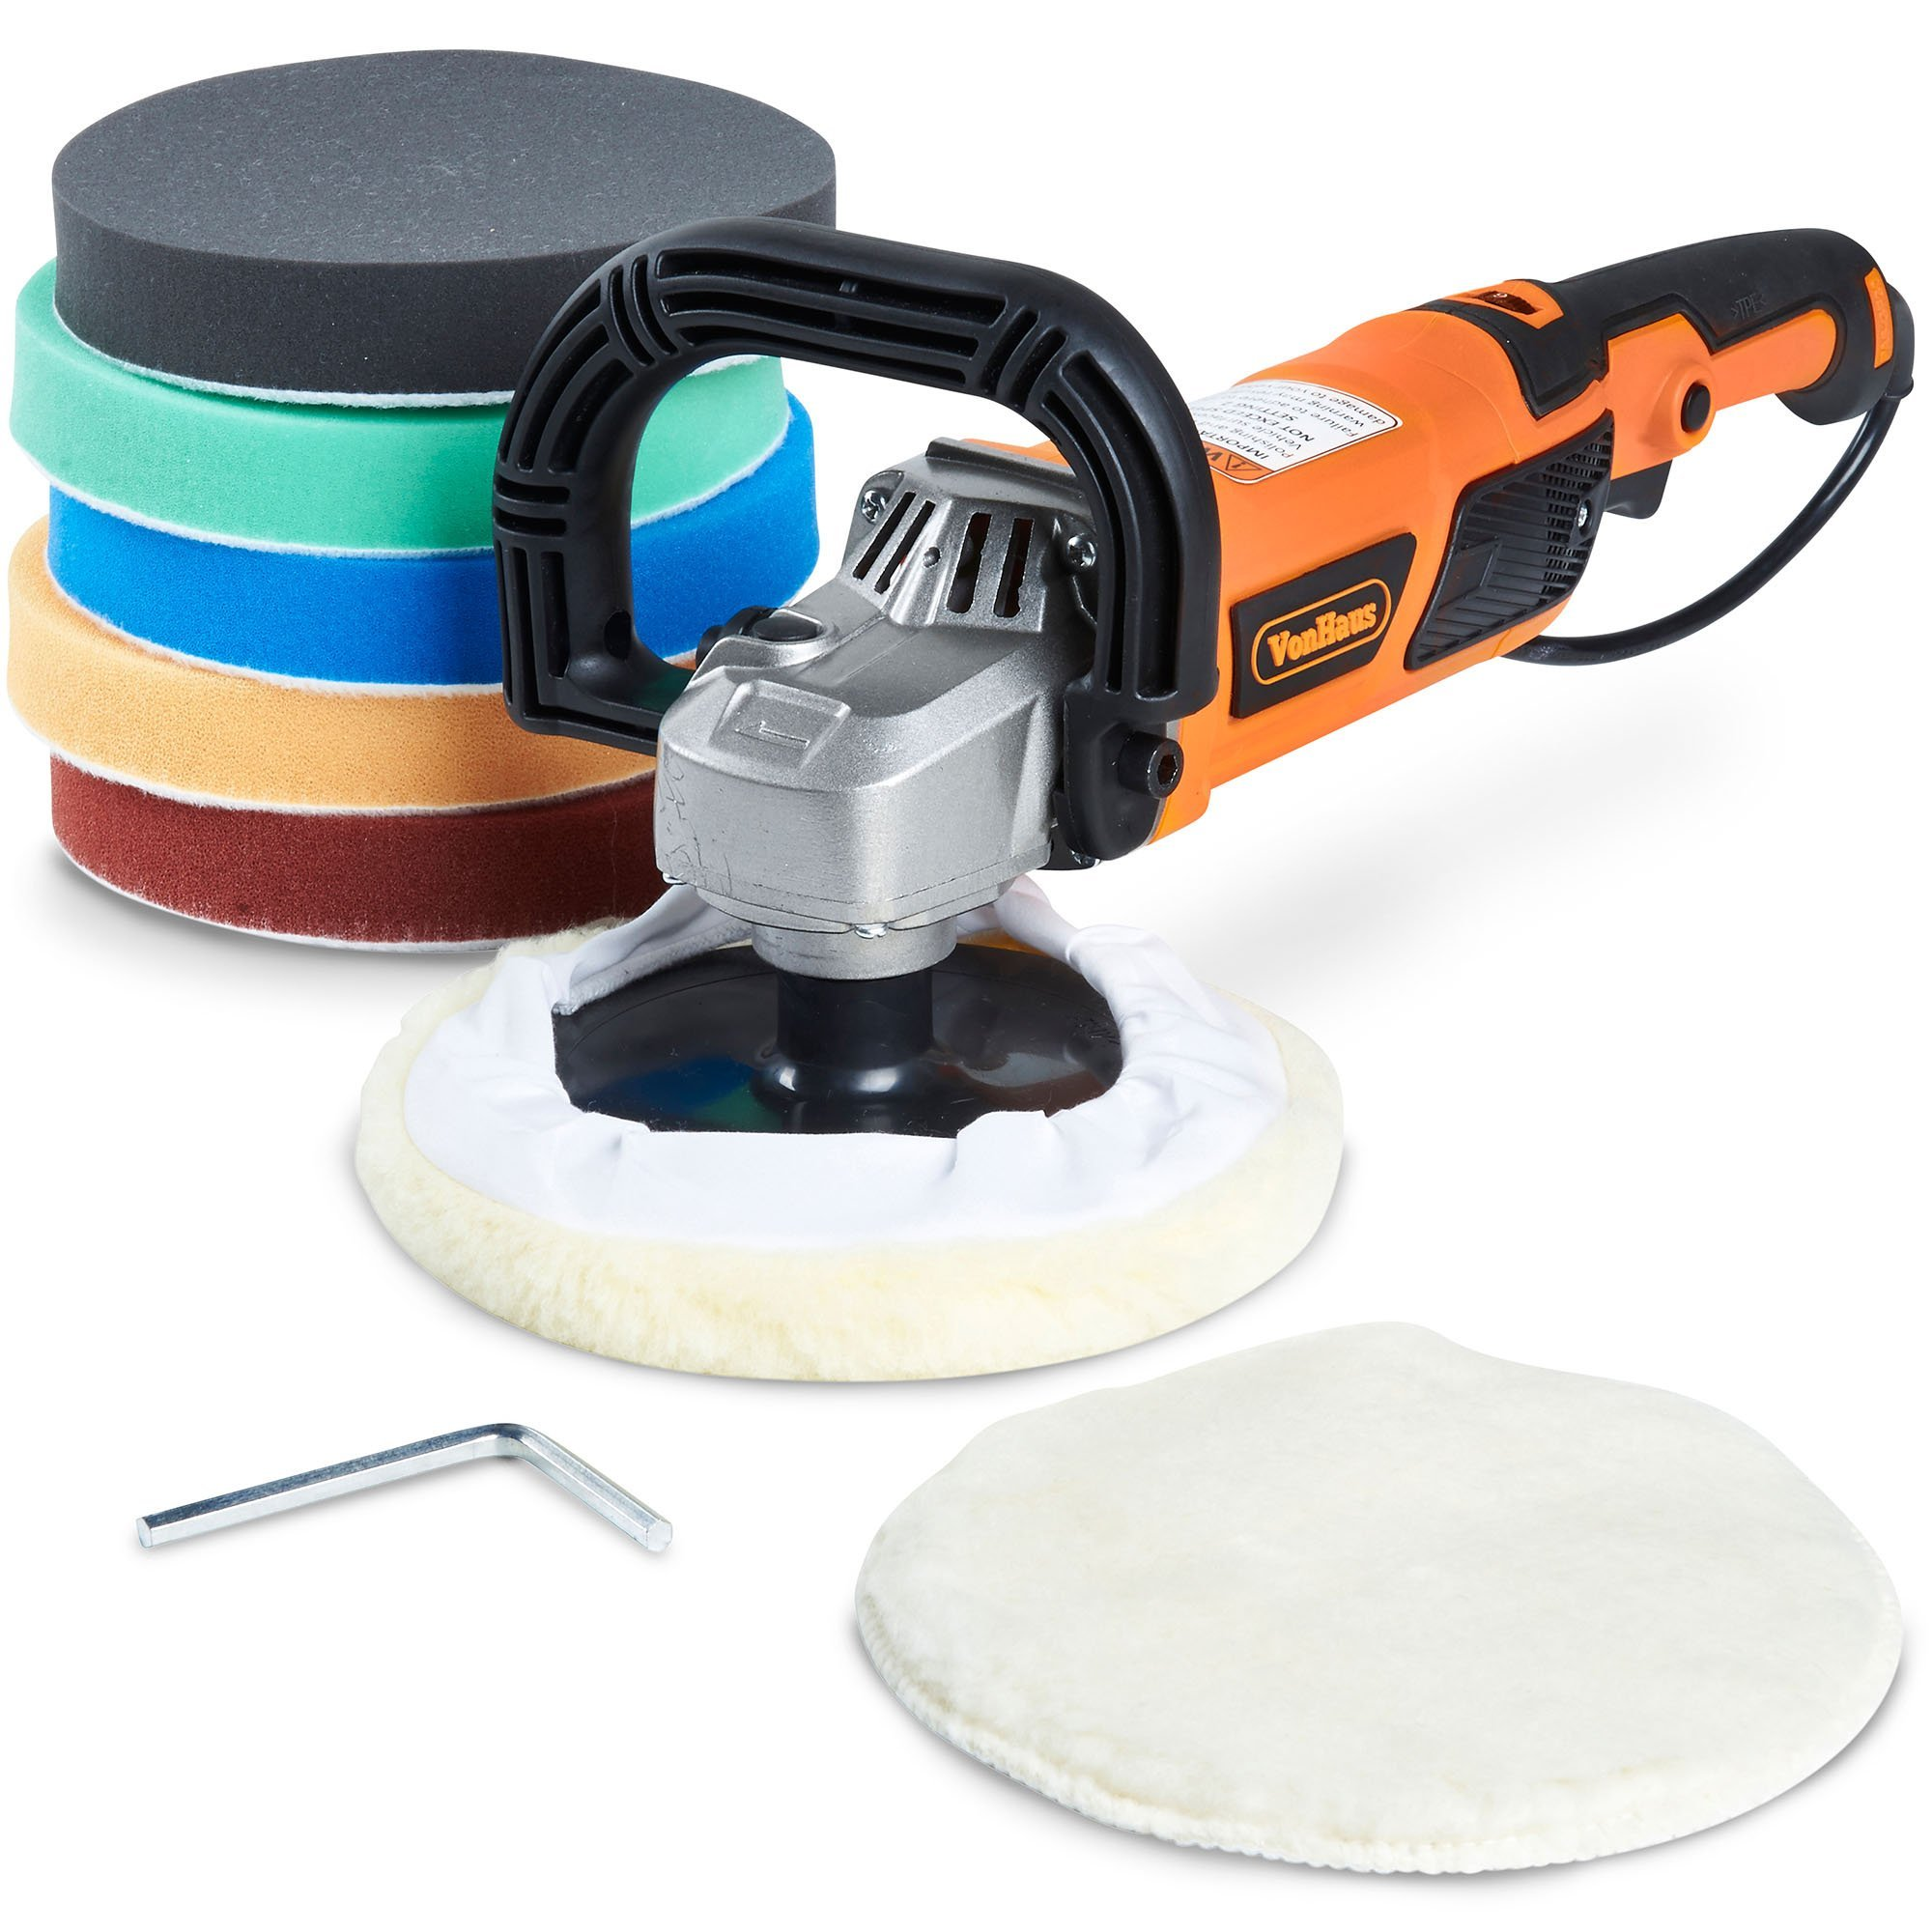 """VonHaus 10-Amp Electric 7"""" Polisher/Buffer / Finishing Machine & Accessory Kit with 6 Variable Speeds and 7 Pads to Buff, Polish, Smooth and Finish – 600-3000 RPM Ideal for Cars, Boats and Tiles"""